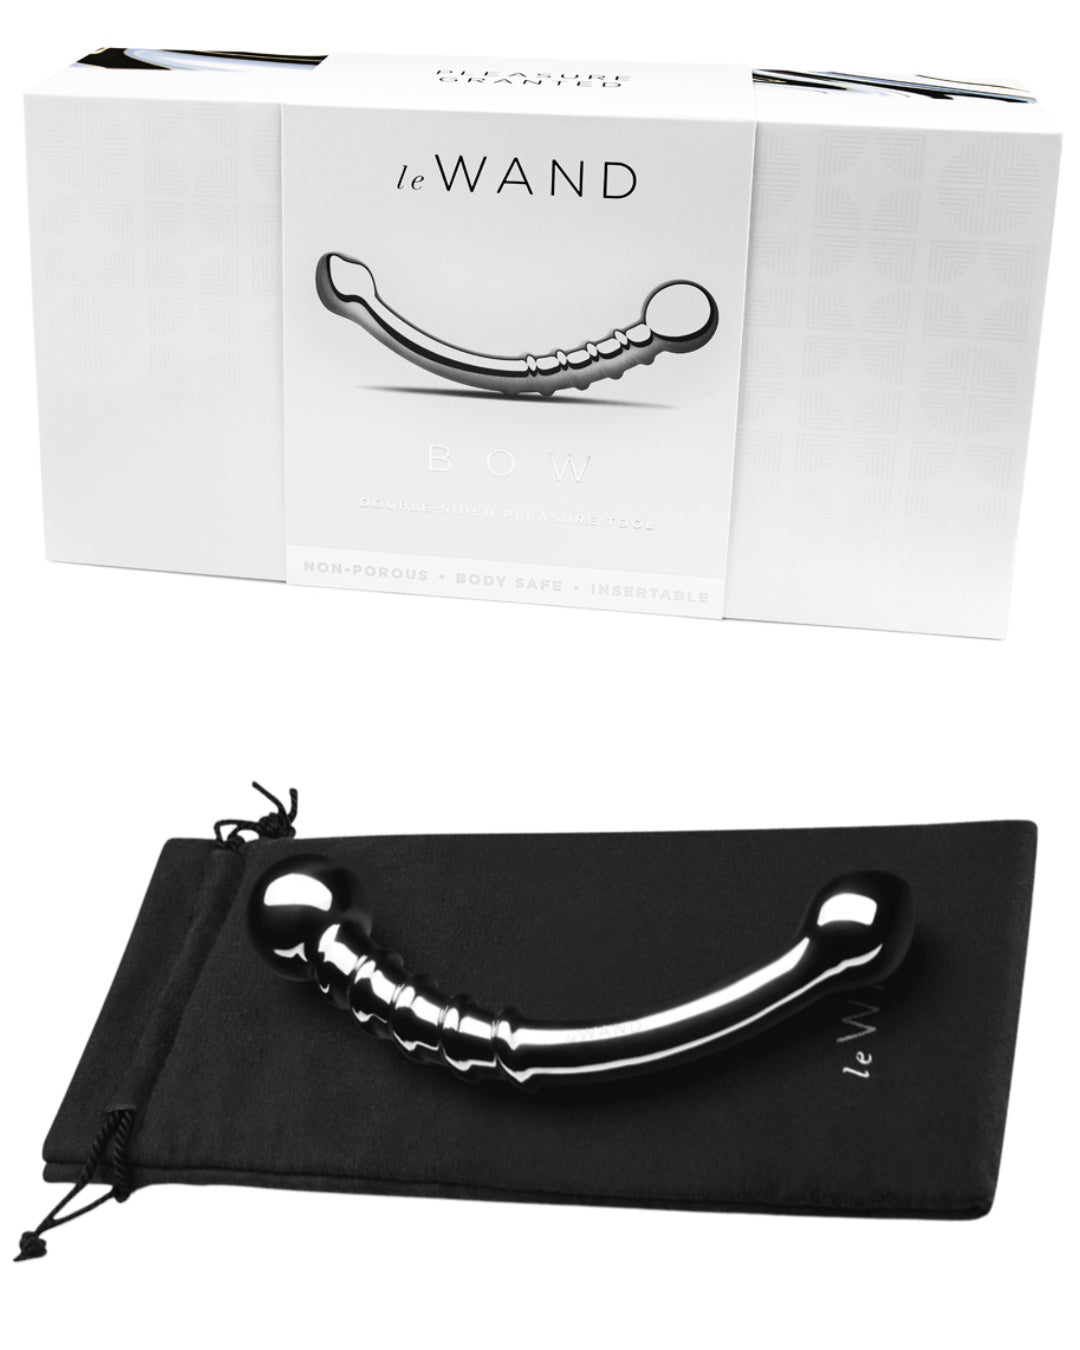 Le Wand Bow Double Ended Stainless Steel Dildo